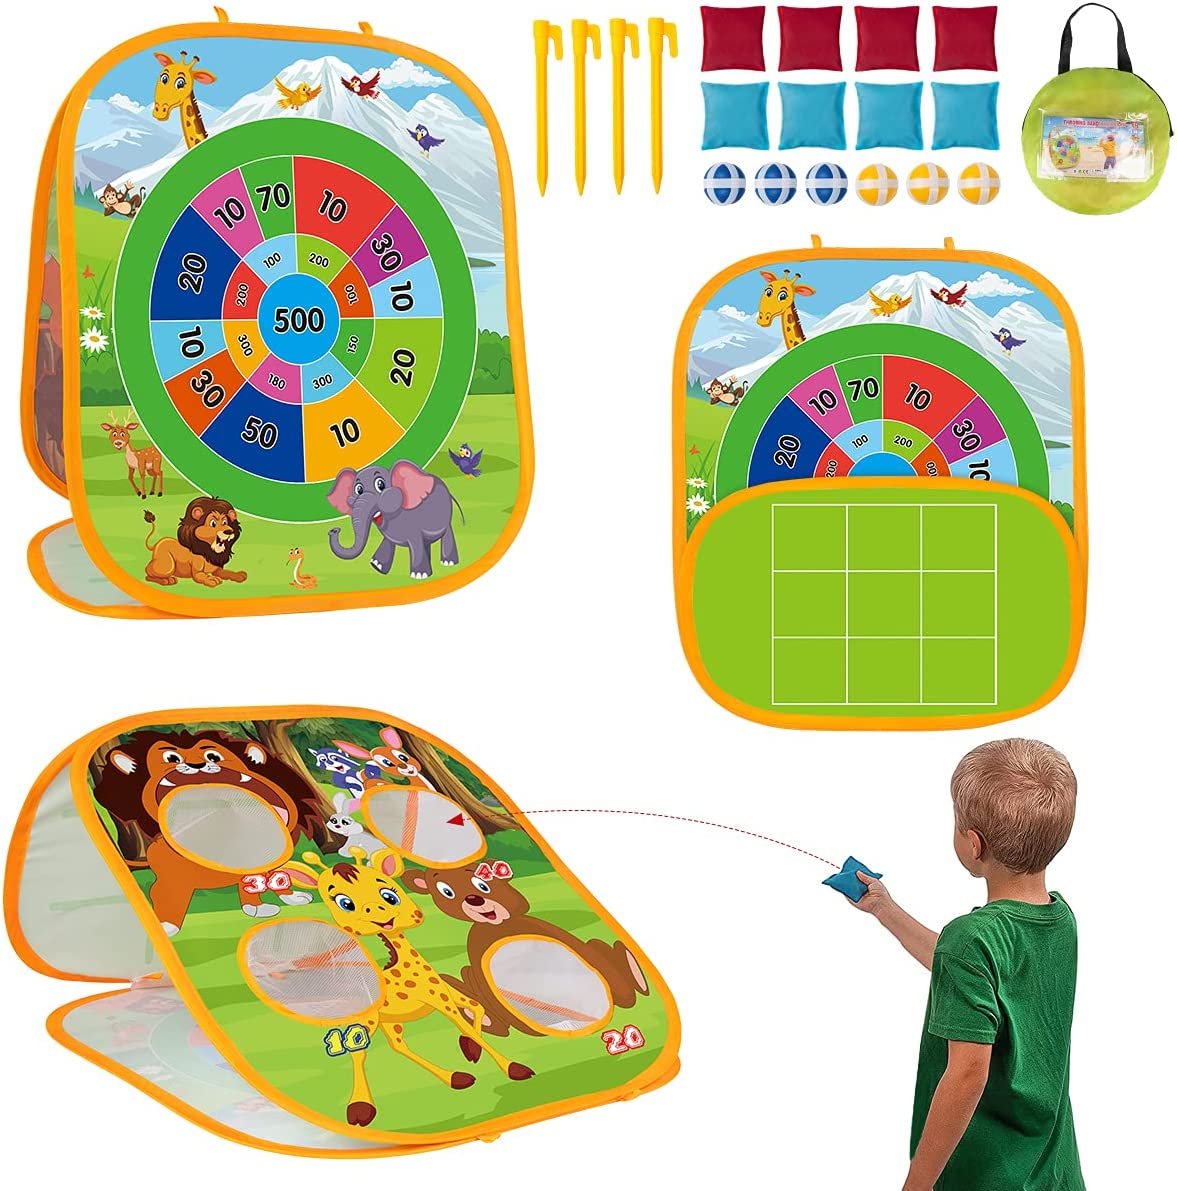 3 in 1 Bean Bag Toss Game Toys To for wholesale Kids Max 68% OFF Outside Set